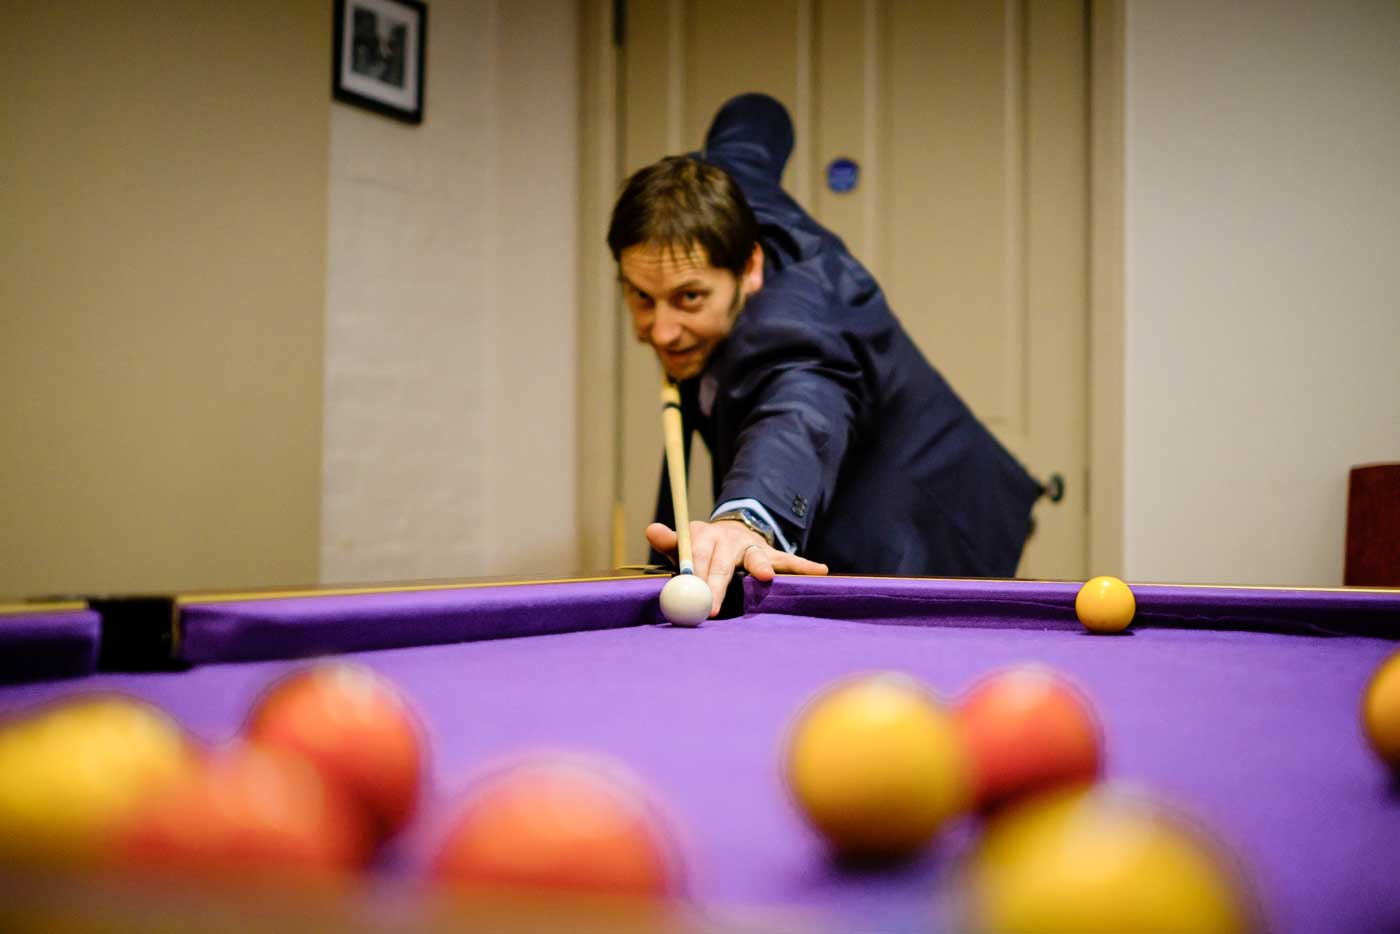 Man playing pool in the basement games room at Stanbrook Abbey by Stanbrook Abbey wedding photographer Clive Blair Photography